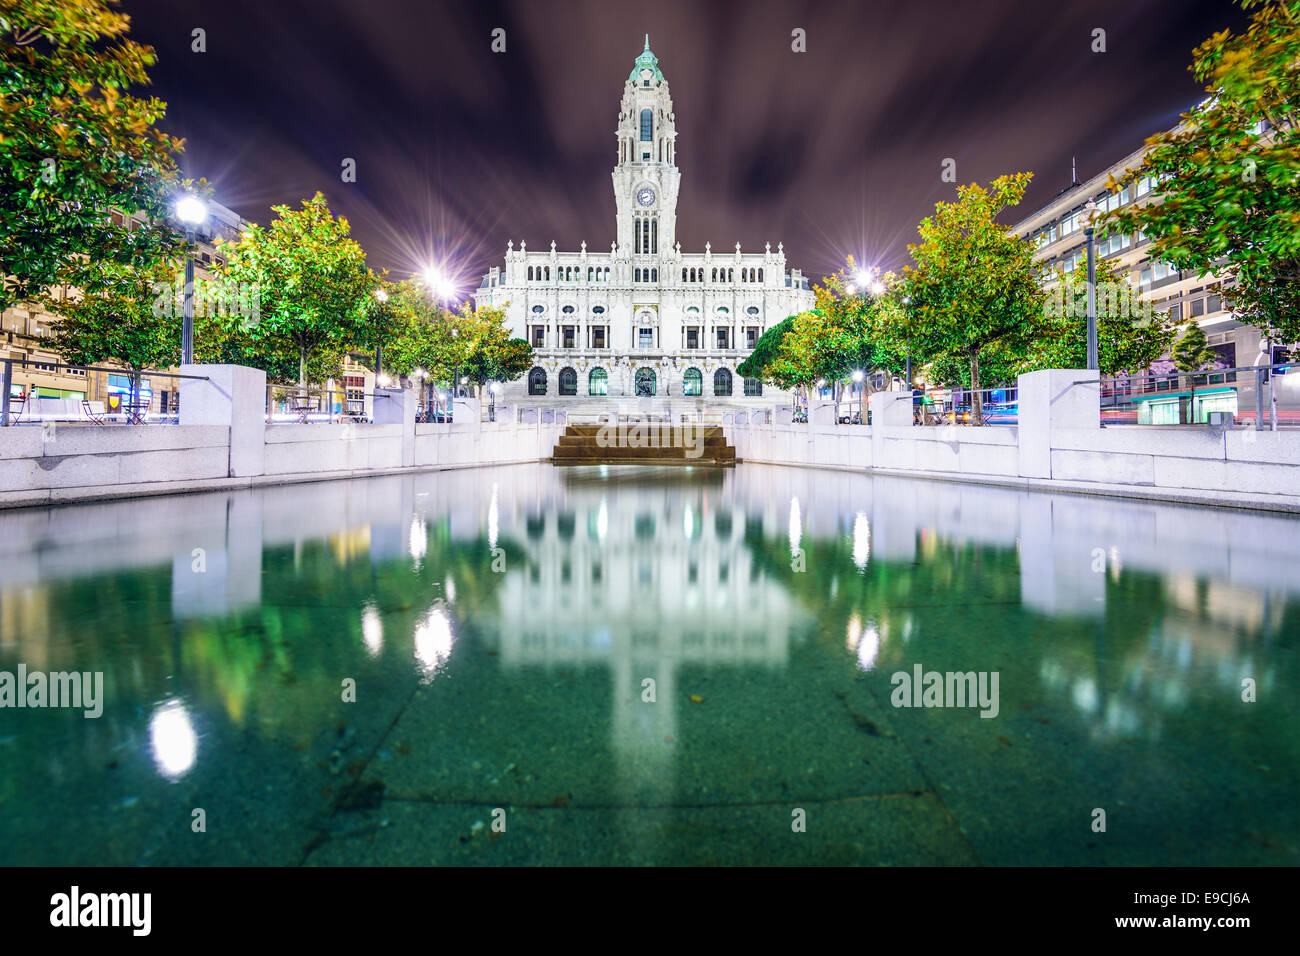 Porto, Portugal city hall at night. - Stock Image